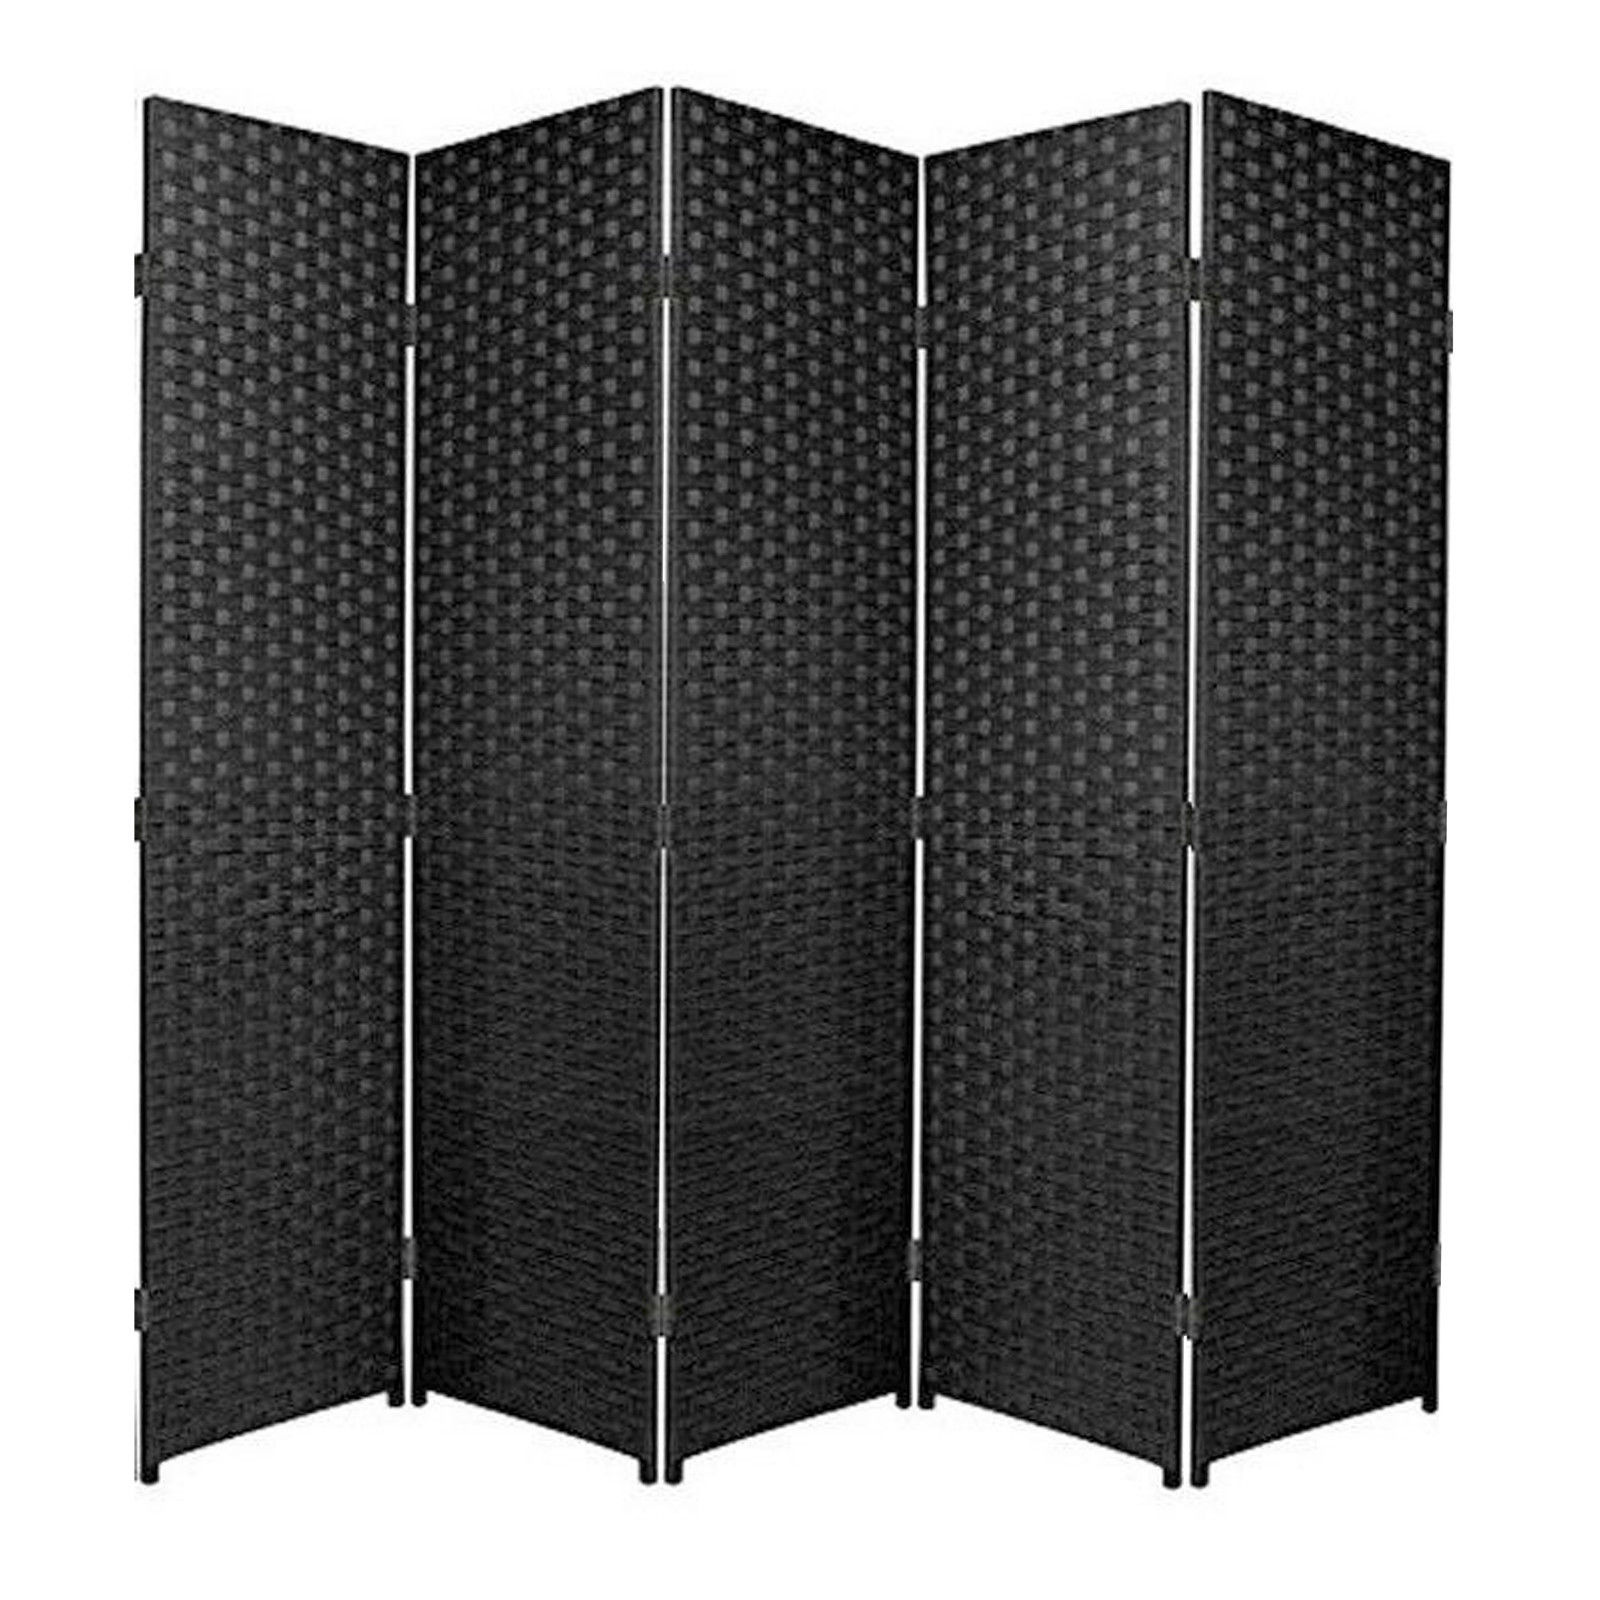 Room Partition Wall: Room Divider Screen Folding Paravent Partition Wall Panel